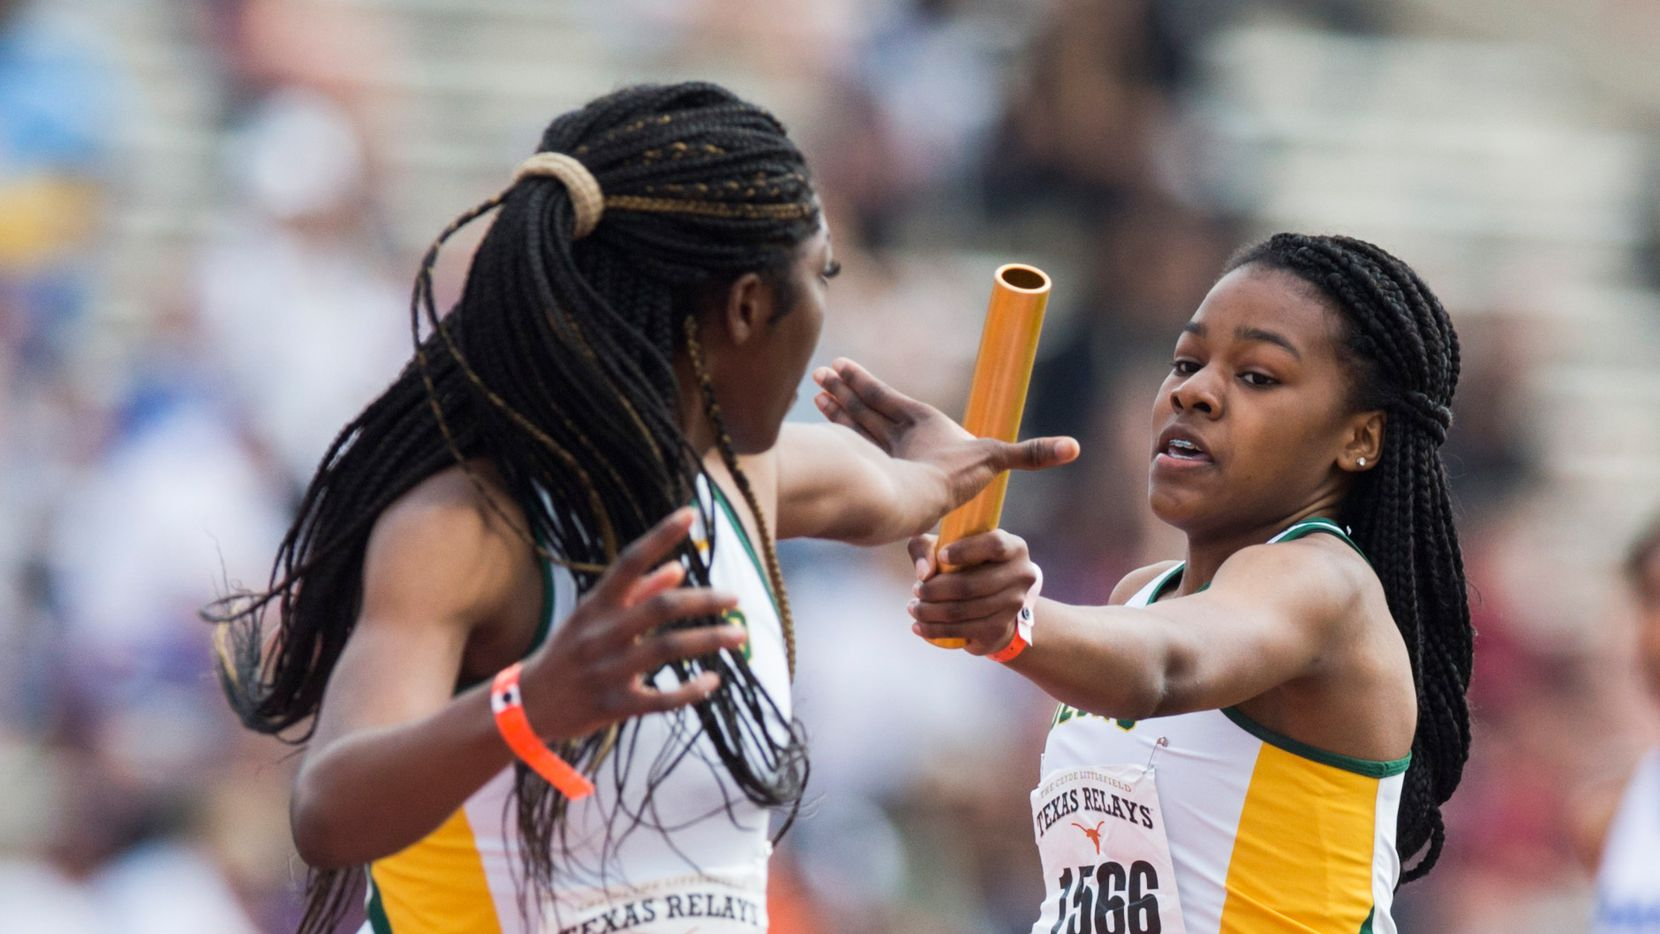 DeSoto's Trinity Kirk (right) hands off the baton to Rosaline Effiong (left) during the High School Girls 1600 Meter Sprint Medley Relay at Texas Relays track and field meet on Friday, March 29, 2019 at Mike A. Meyers Stadium at the University of Texas in Austin.